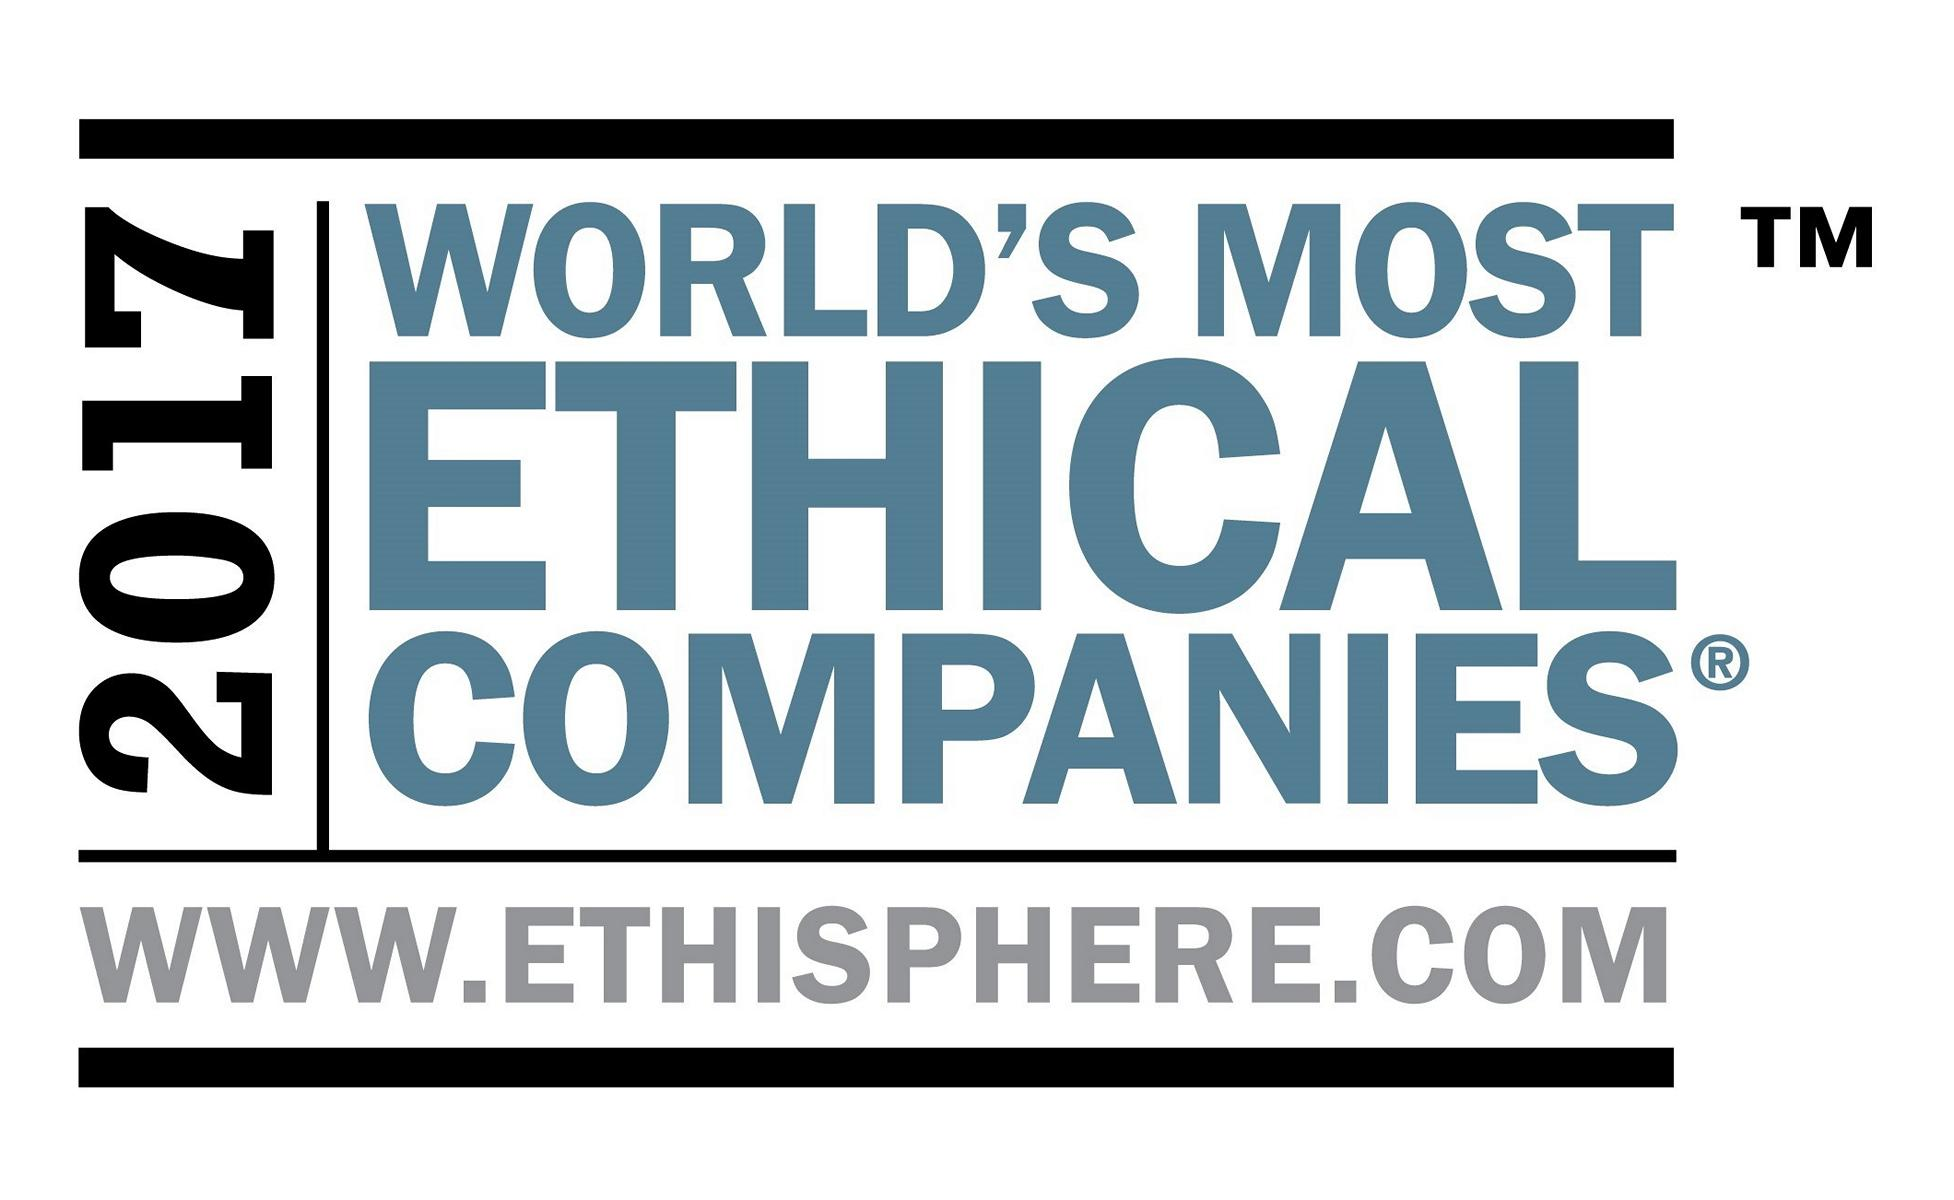 K1600 206679 2017 World s Most Ethical Companies logotype